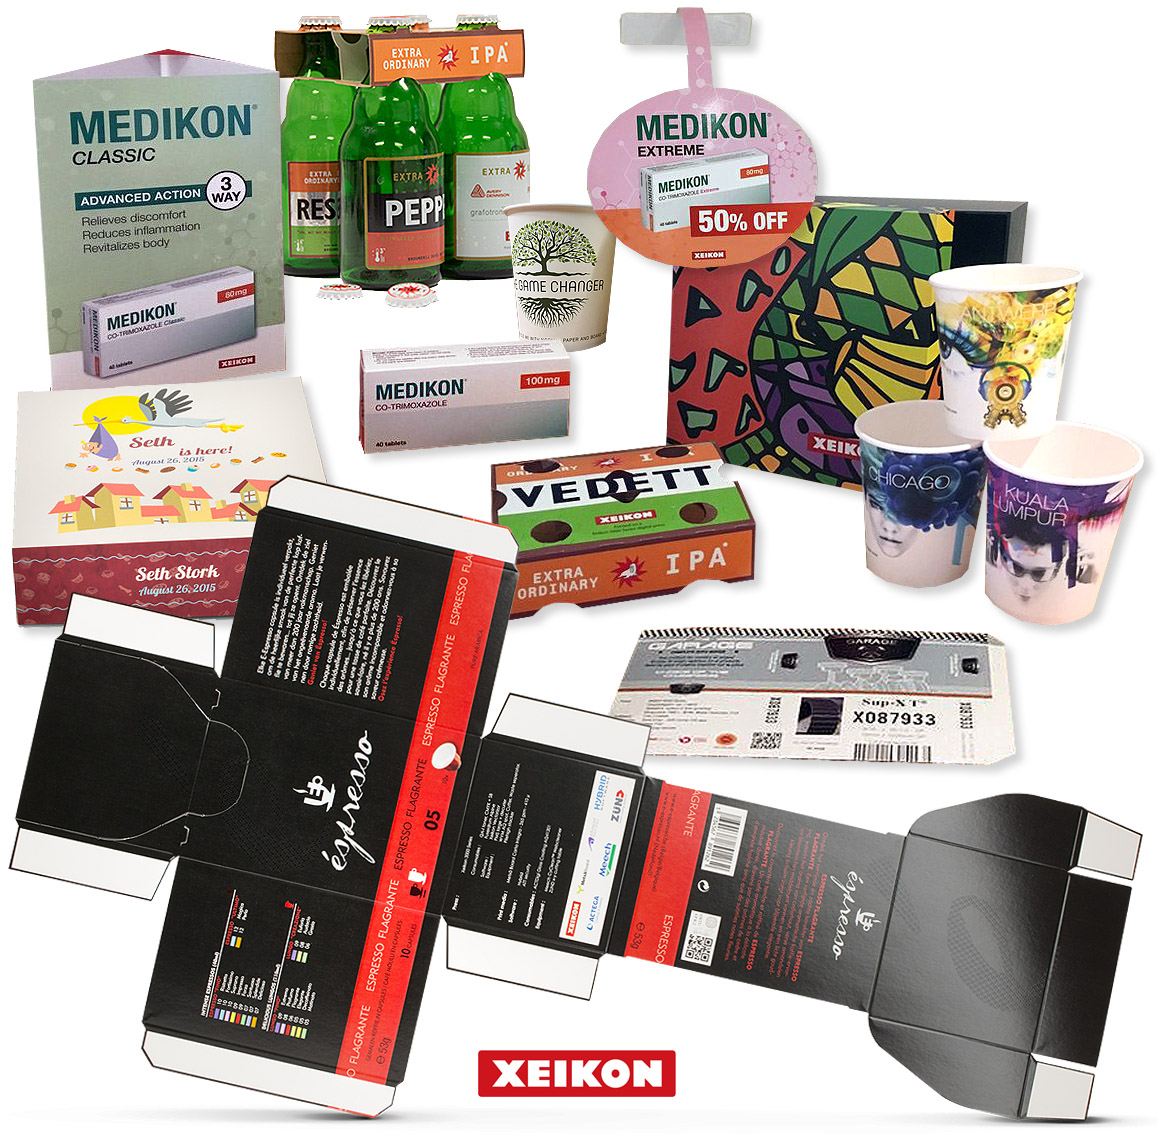 Xeikon - Digital Folding Carton (Xeikon 3500 | Dry Toner)